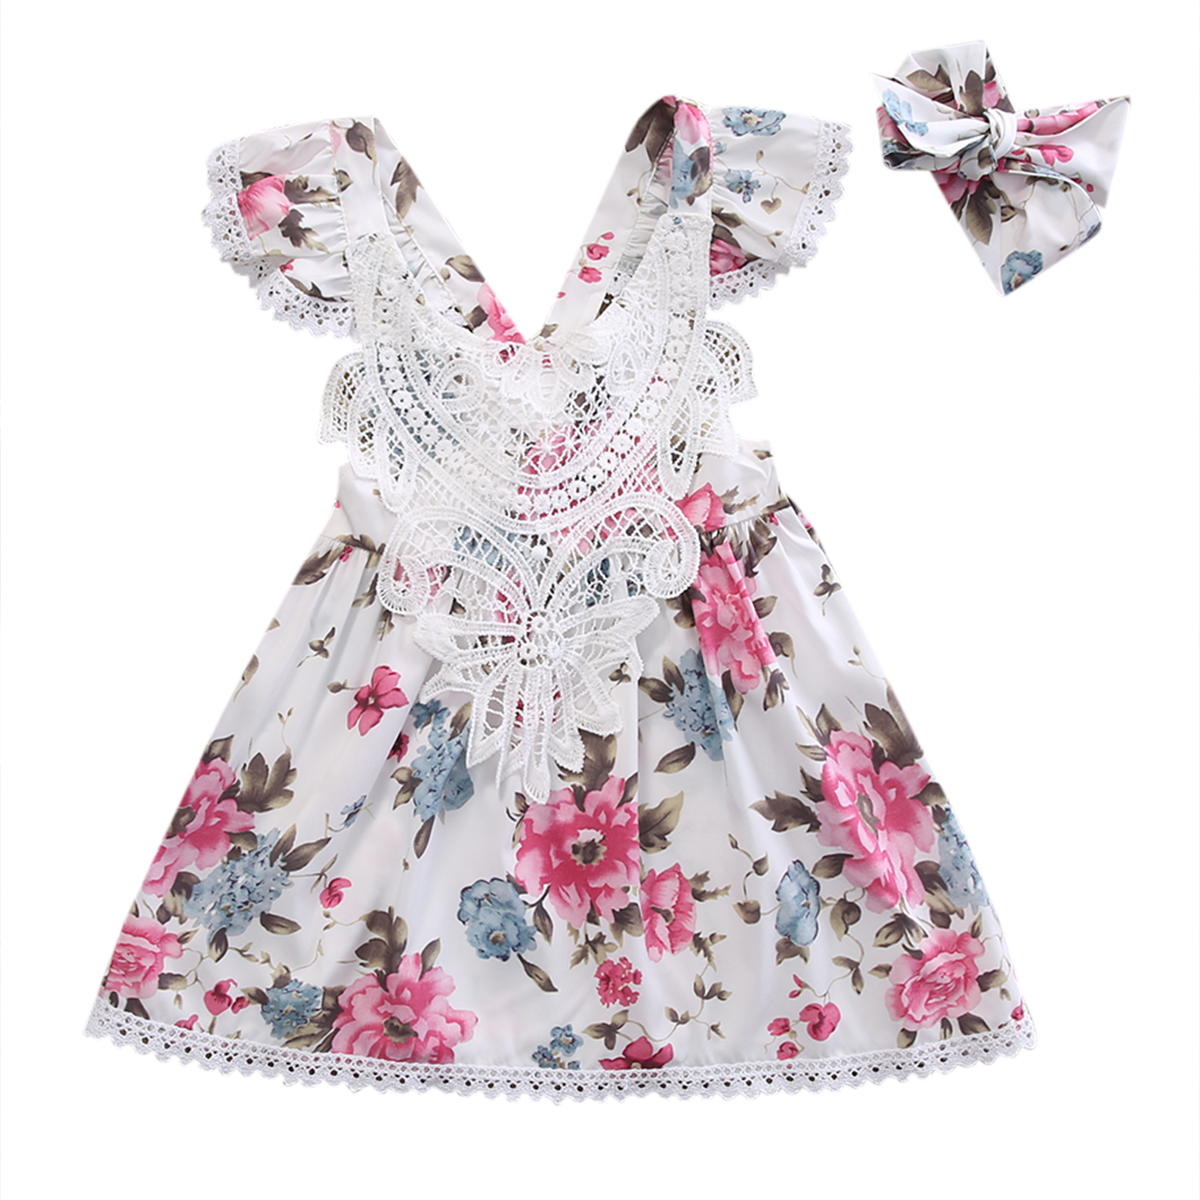 Girls Flower Floral Sleeveless Mini Princess Lace Dresses Clothes Summer Toddler Kids Baby Girl Clothing Dress new metal magnetic wireless bluetooth headphone sport headset hands fress hifi earphone with mic for iphone samsung phones